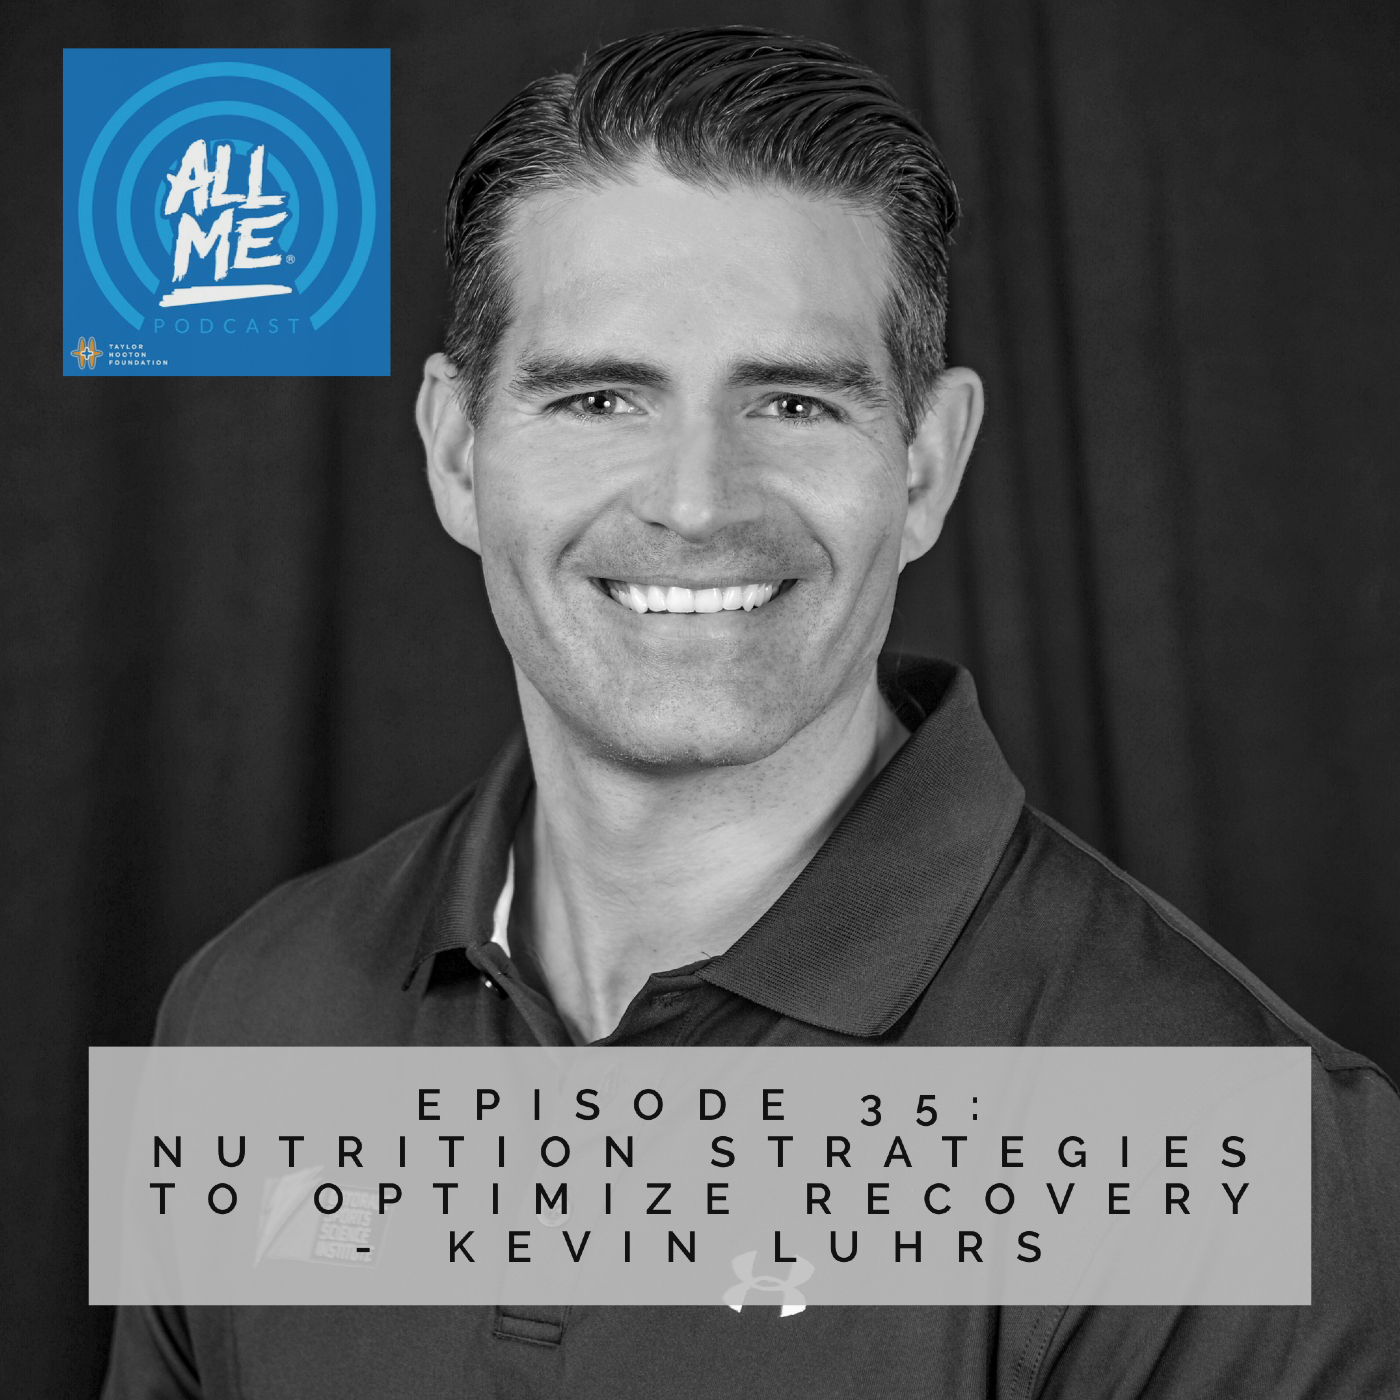 Episode 35: Nutrition Strategies To Optimize Recovery - Kevin Luhrs